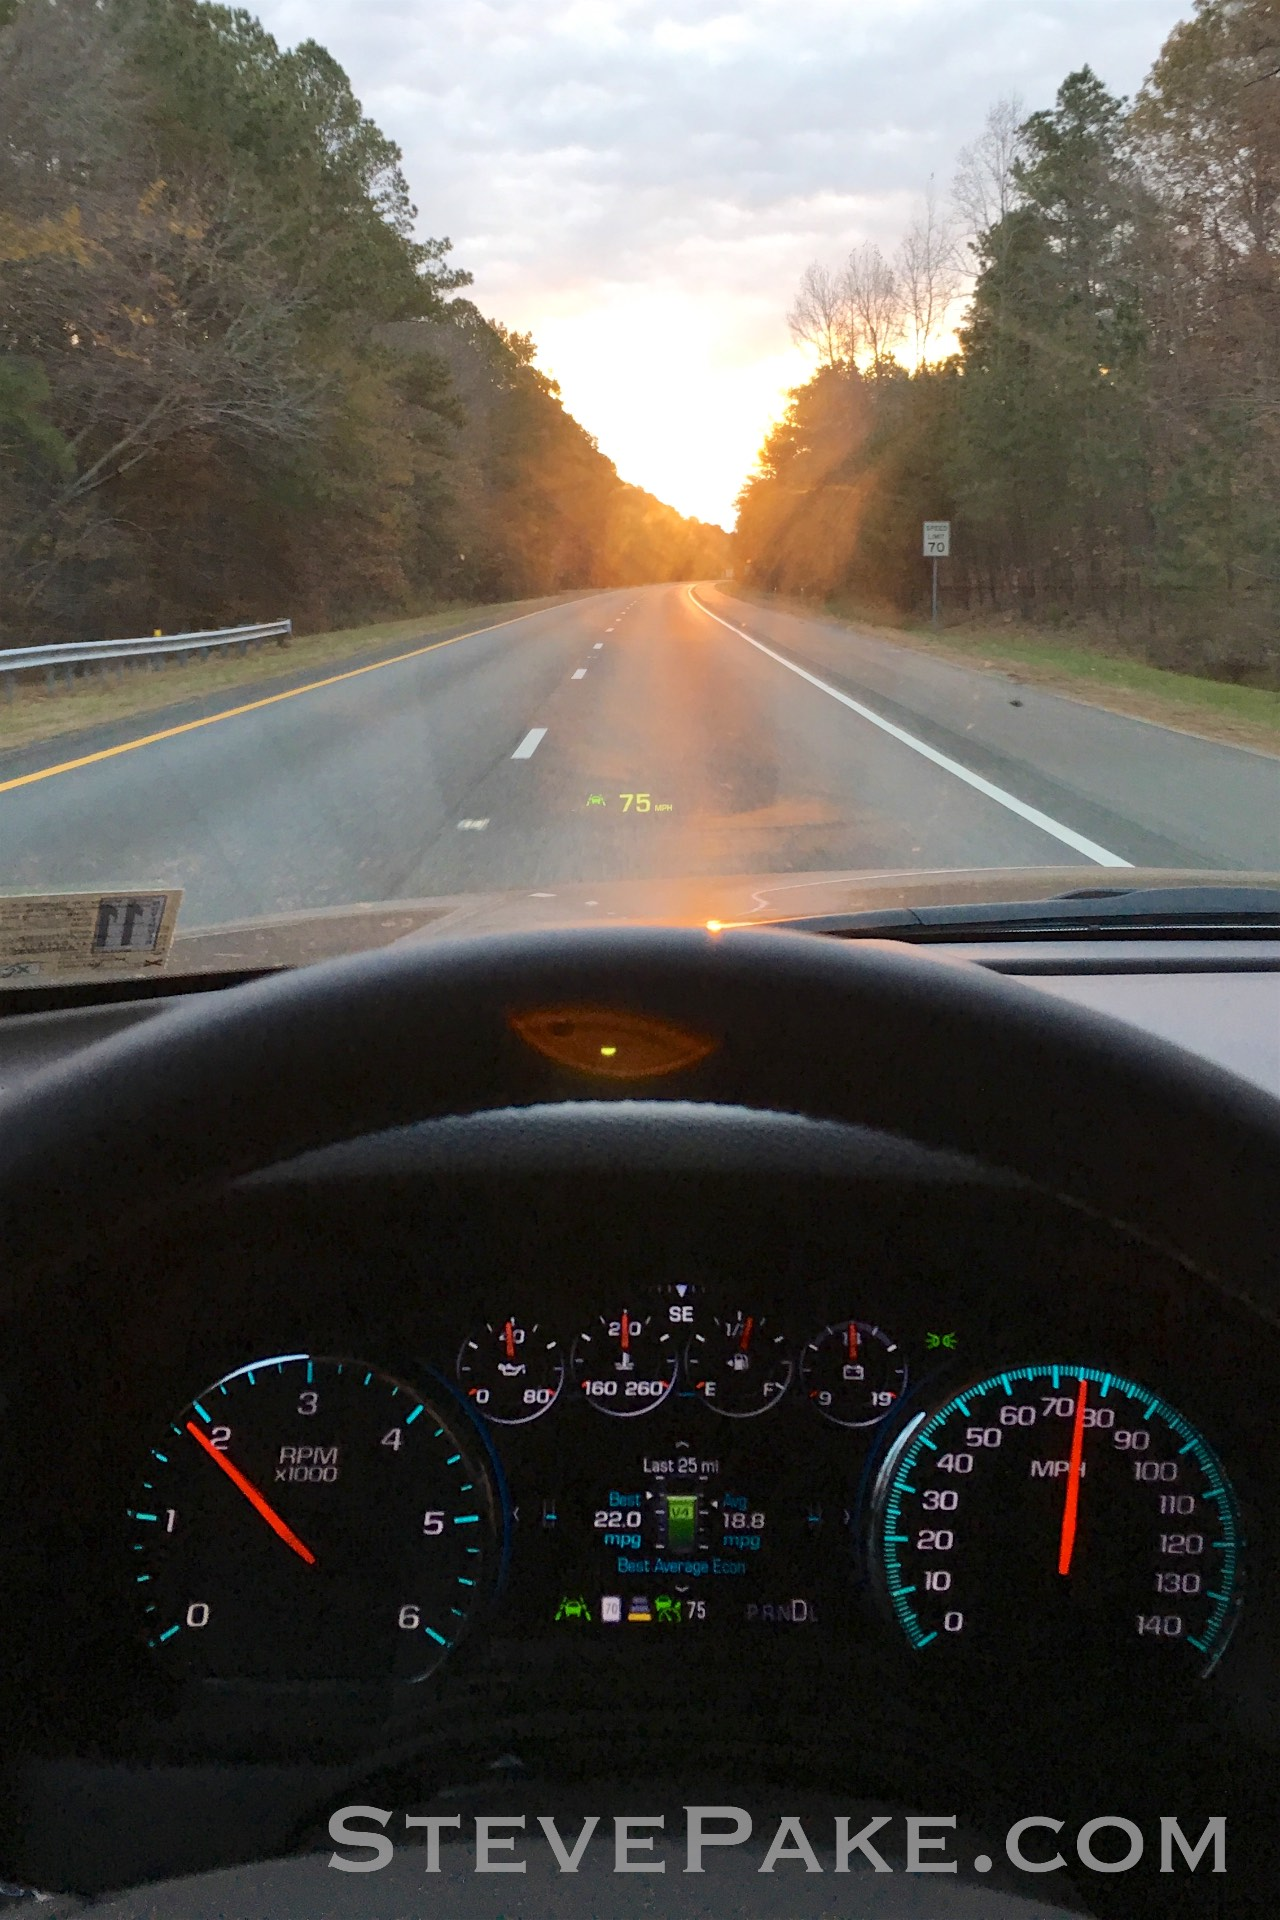 Cruise control set at 75 mph, near following distance (far is like a 1/4 mile away it seems like), and the HUD is sweet.